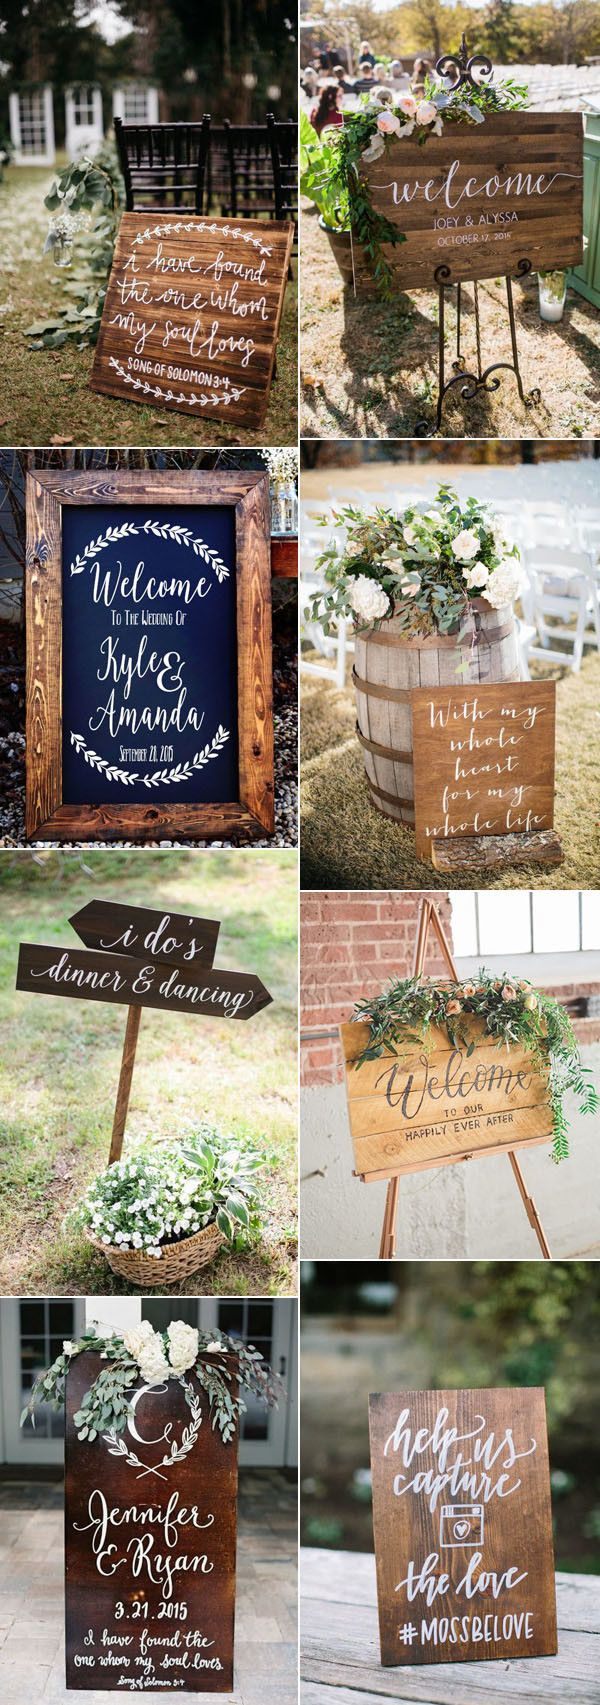 country rustic wooden wedding signs